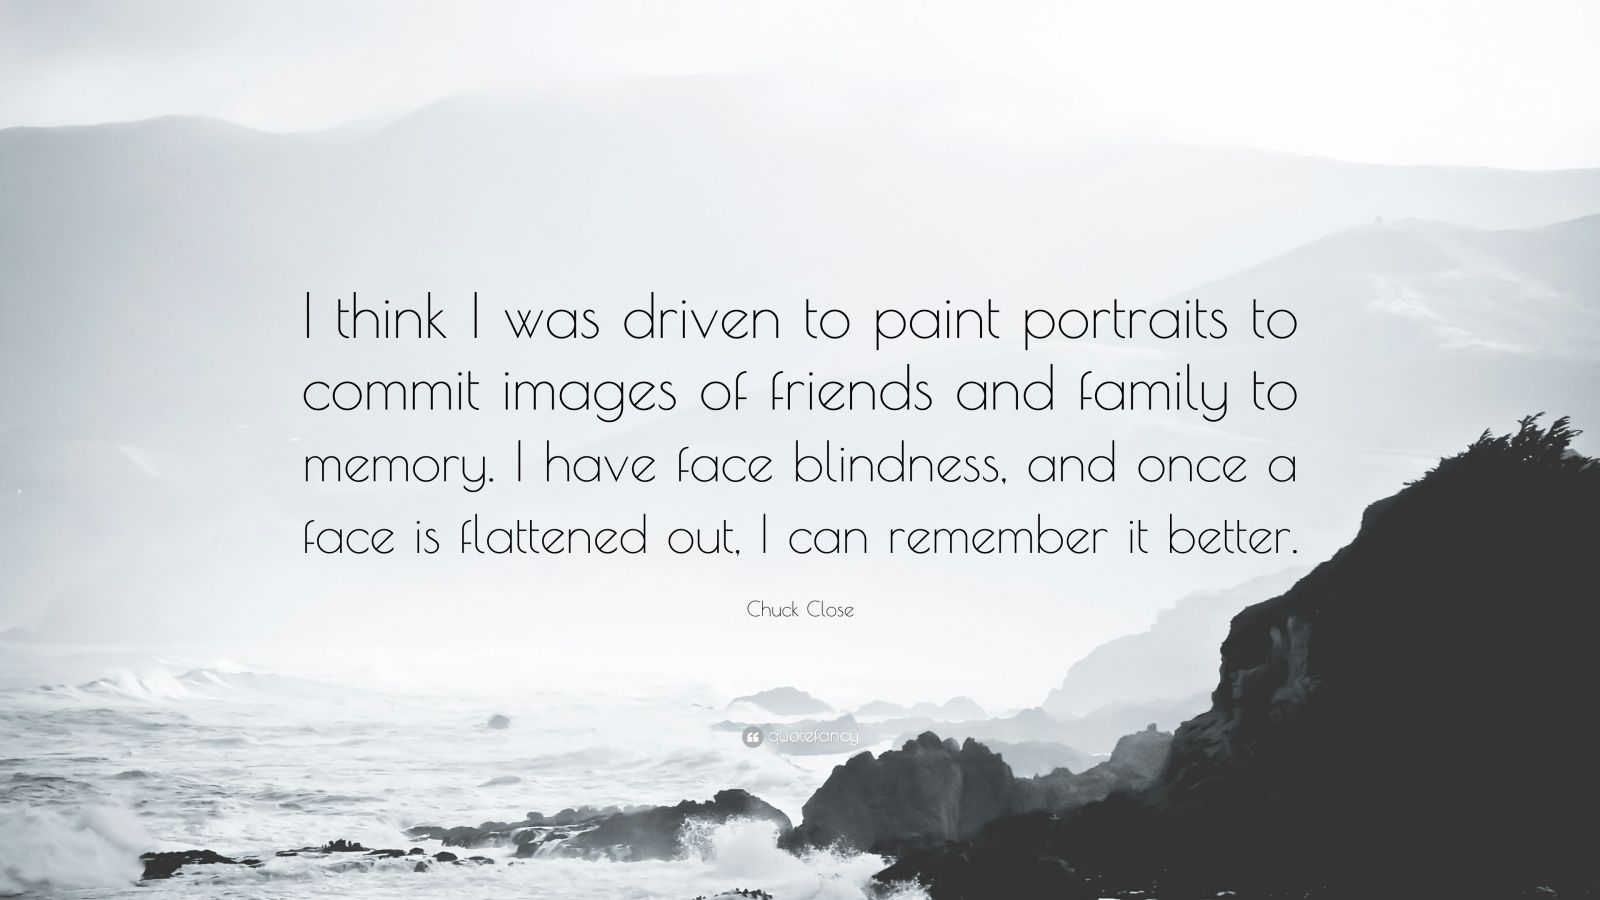 """Chuck Close Quote: """"I think I was driven to paint portraits to commit images of friends and family to memory. I have face blindness, and once a face is flattened out, I can remember it better."""""""